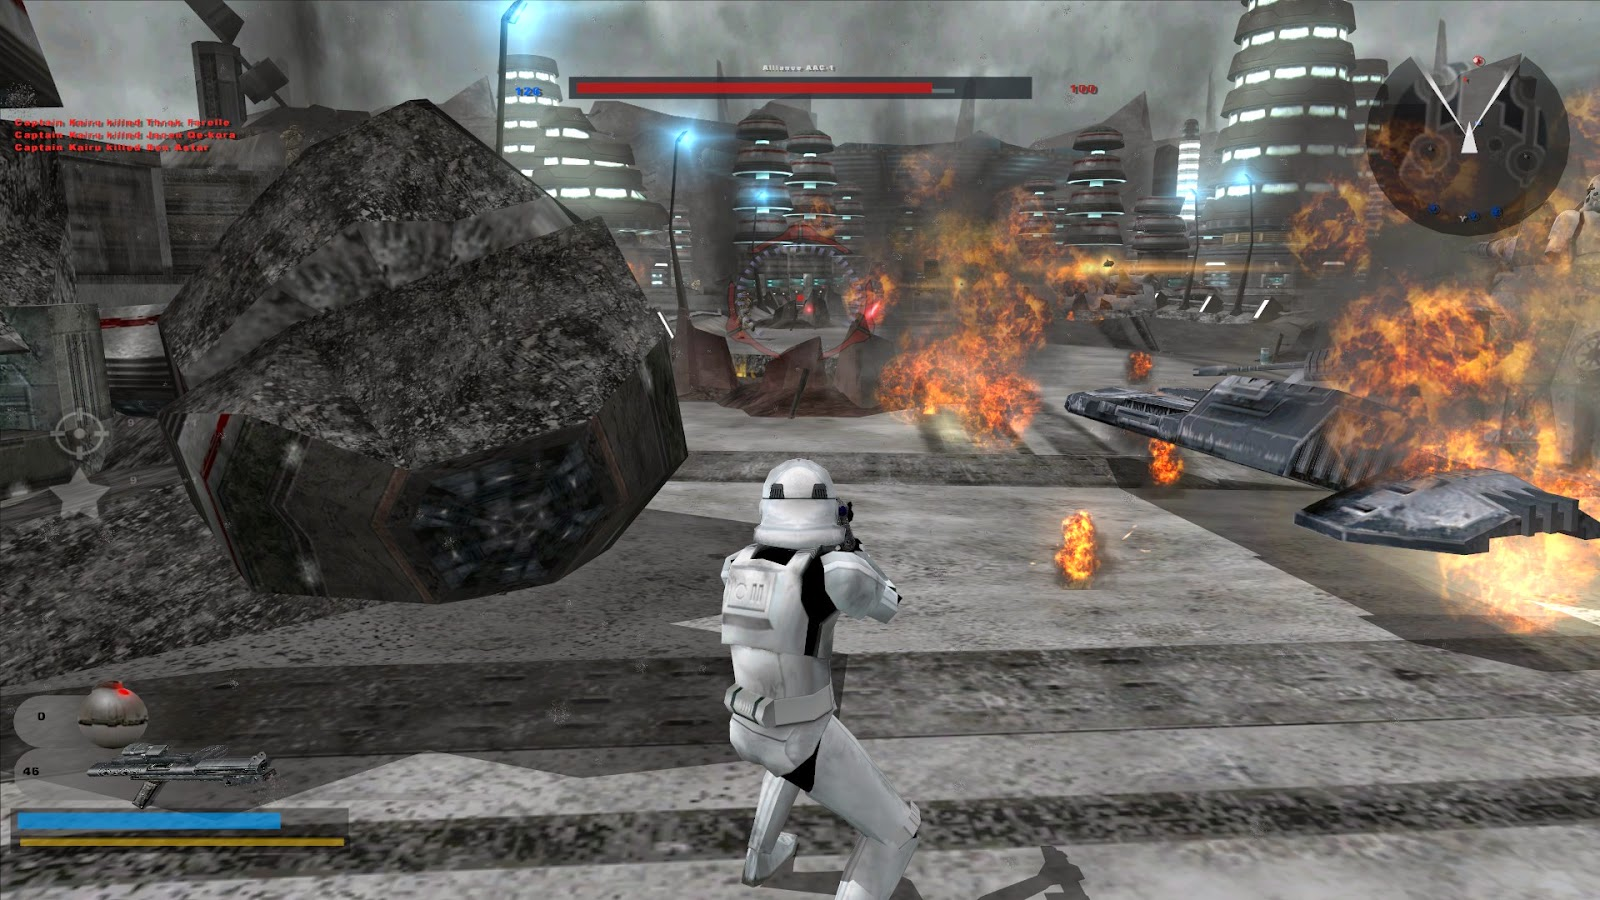 Star Wars: Battlefront II Mygeeto